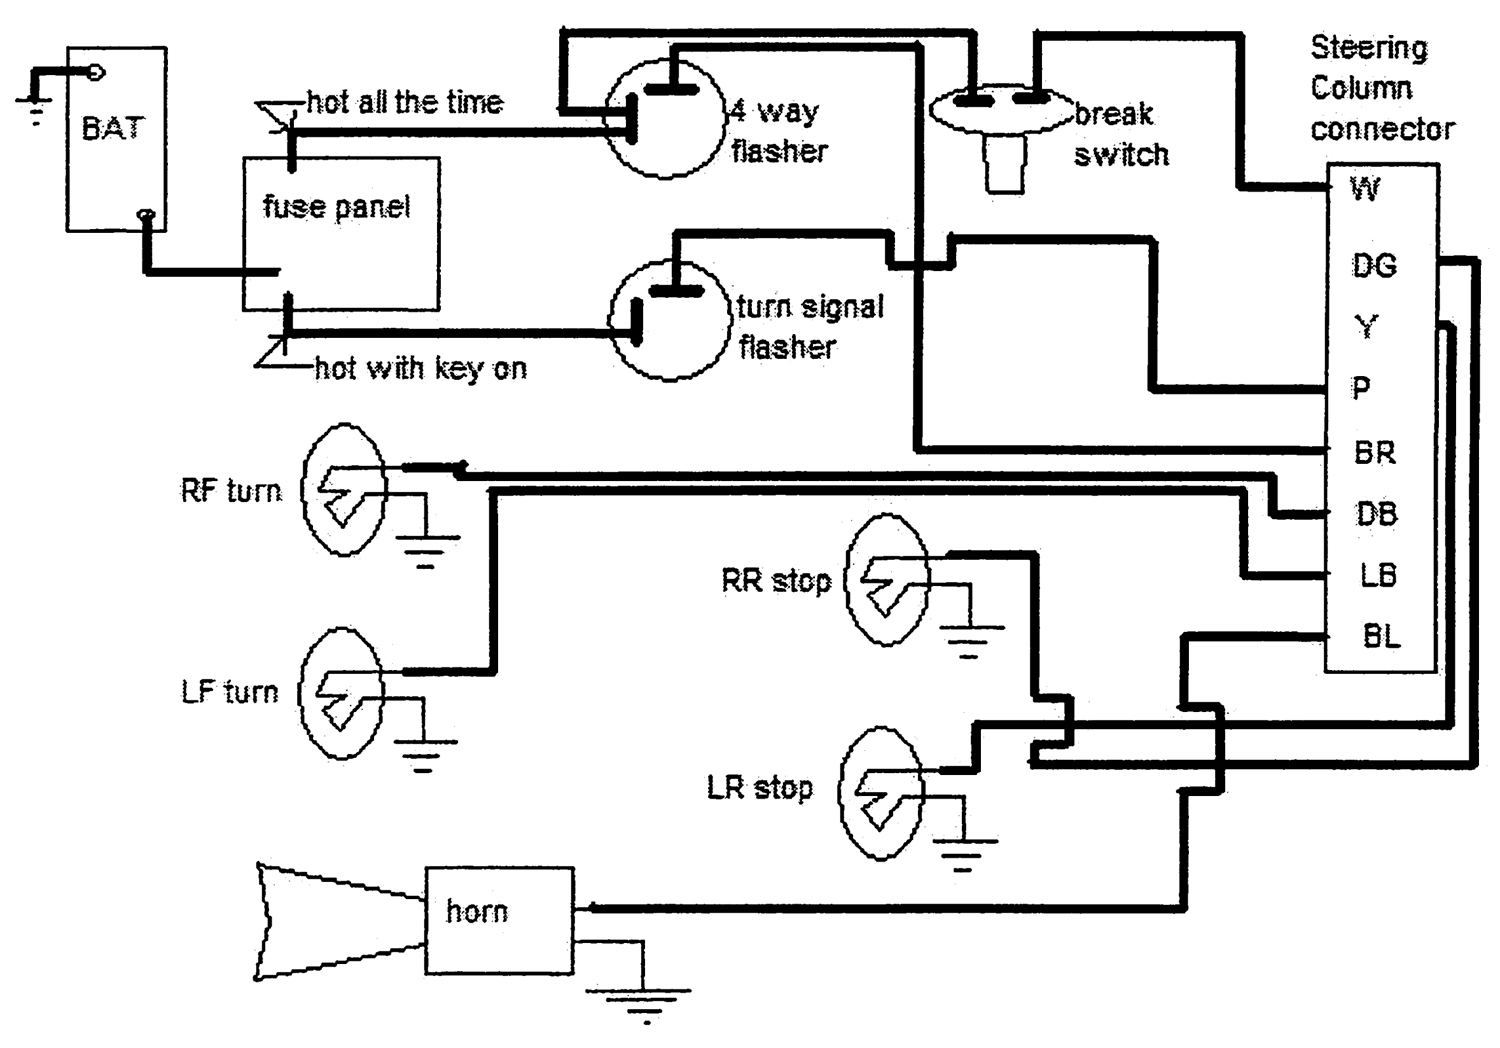 steering column wiring diagram collection ididit steering column